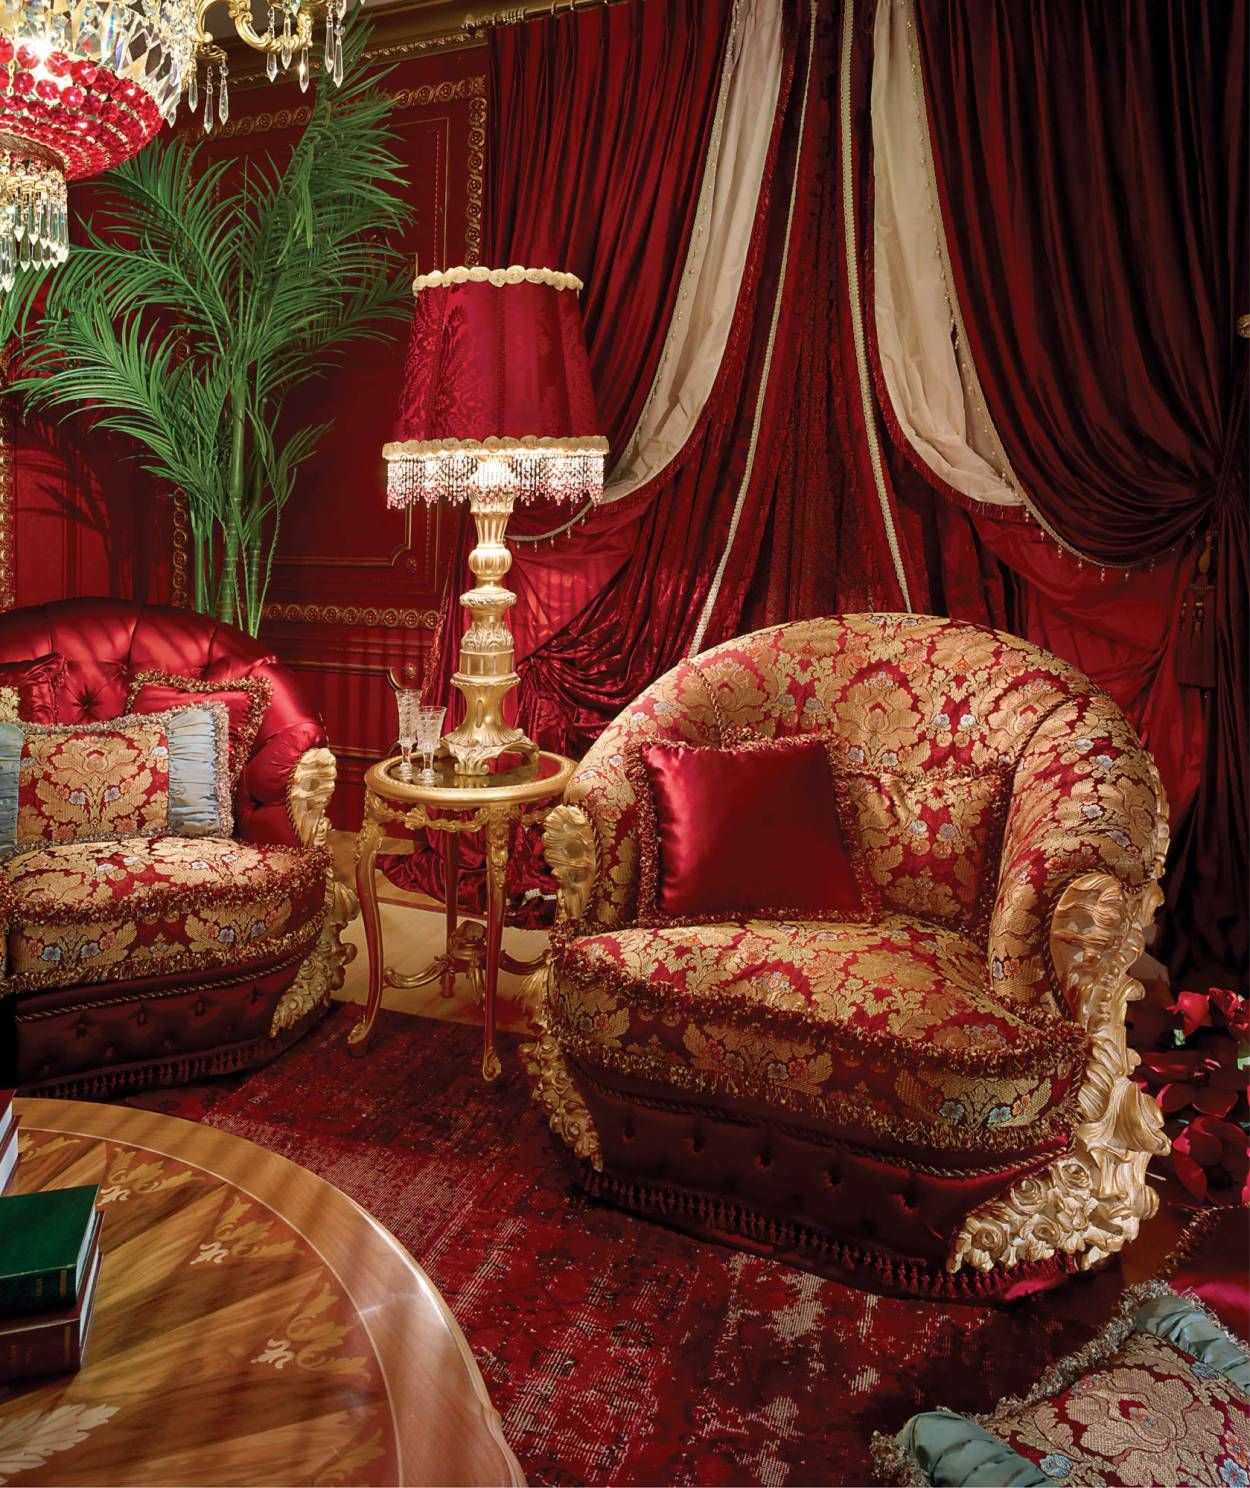 Baroque Red And Gold Living Room Luxury Italian Furniture Baroque Living Room Baroque Furniture Red luxury room pictures